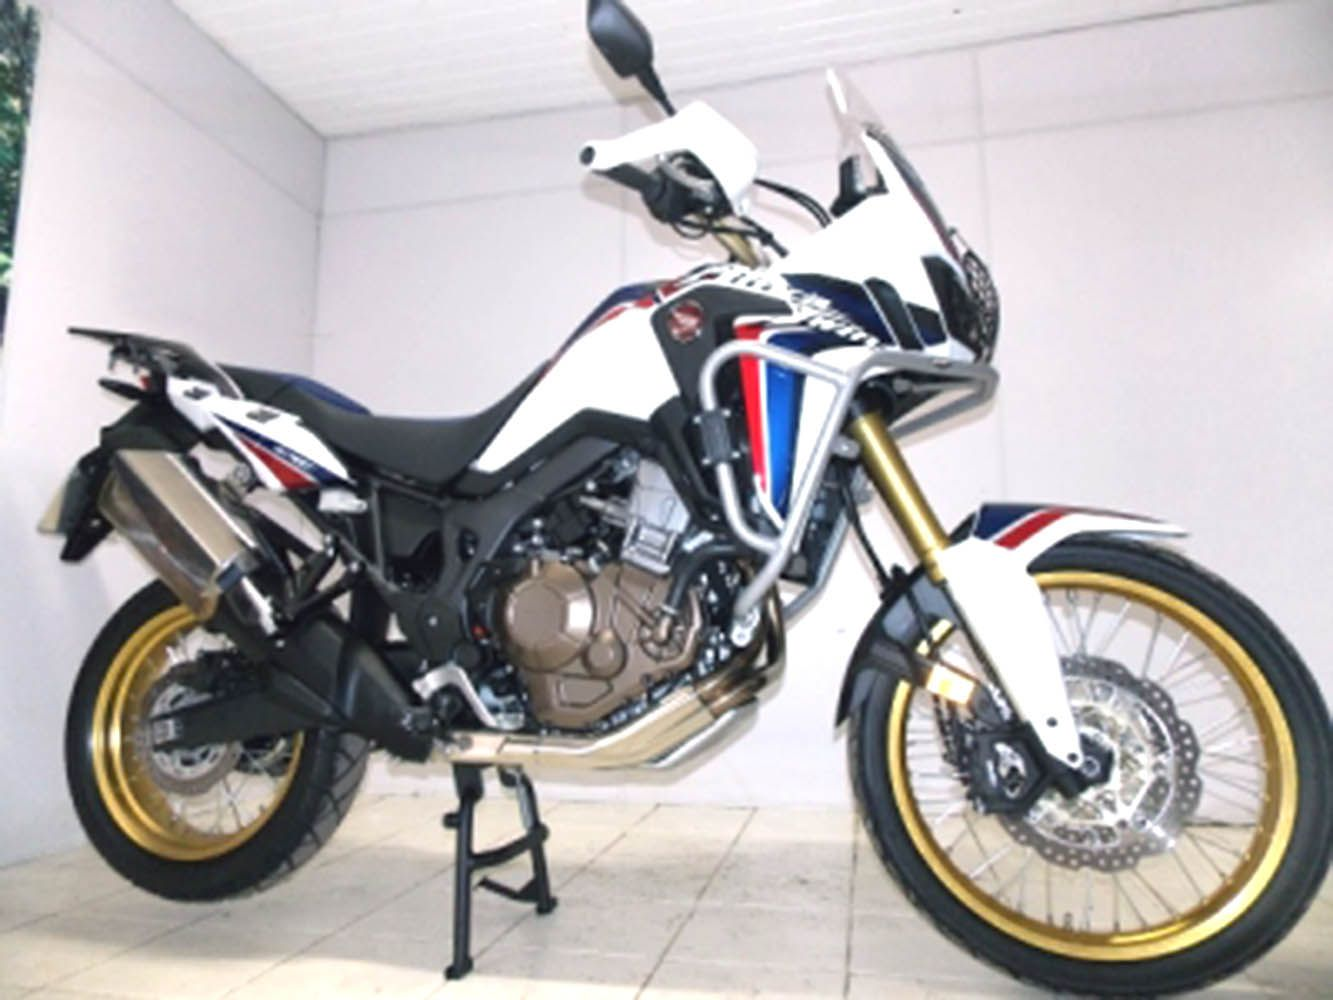 Cavalete Central Crf 1000 l Africa Twin Preto Chapam 10710